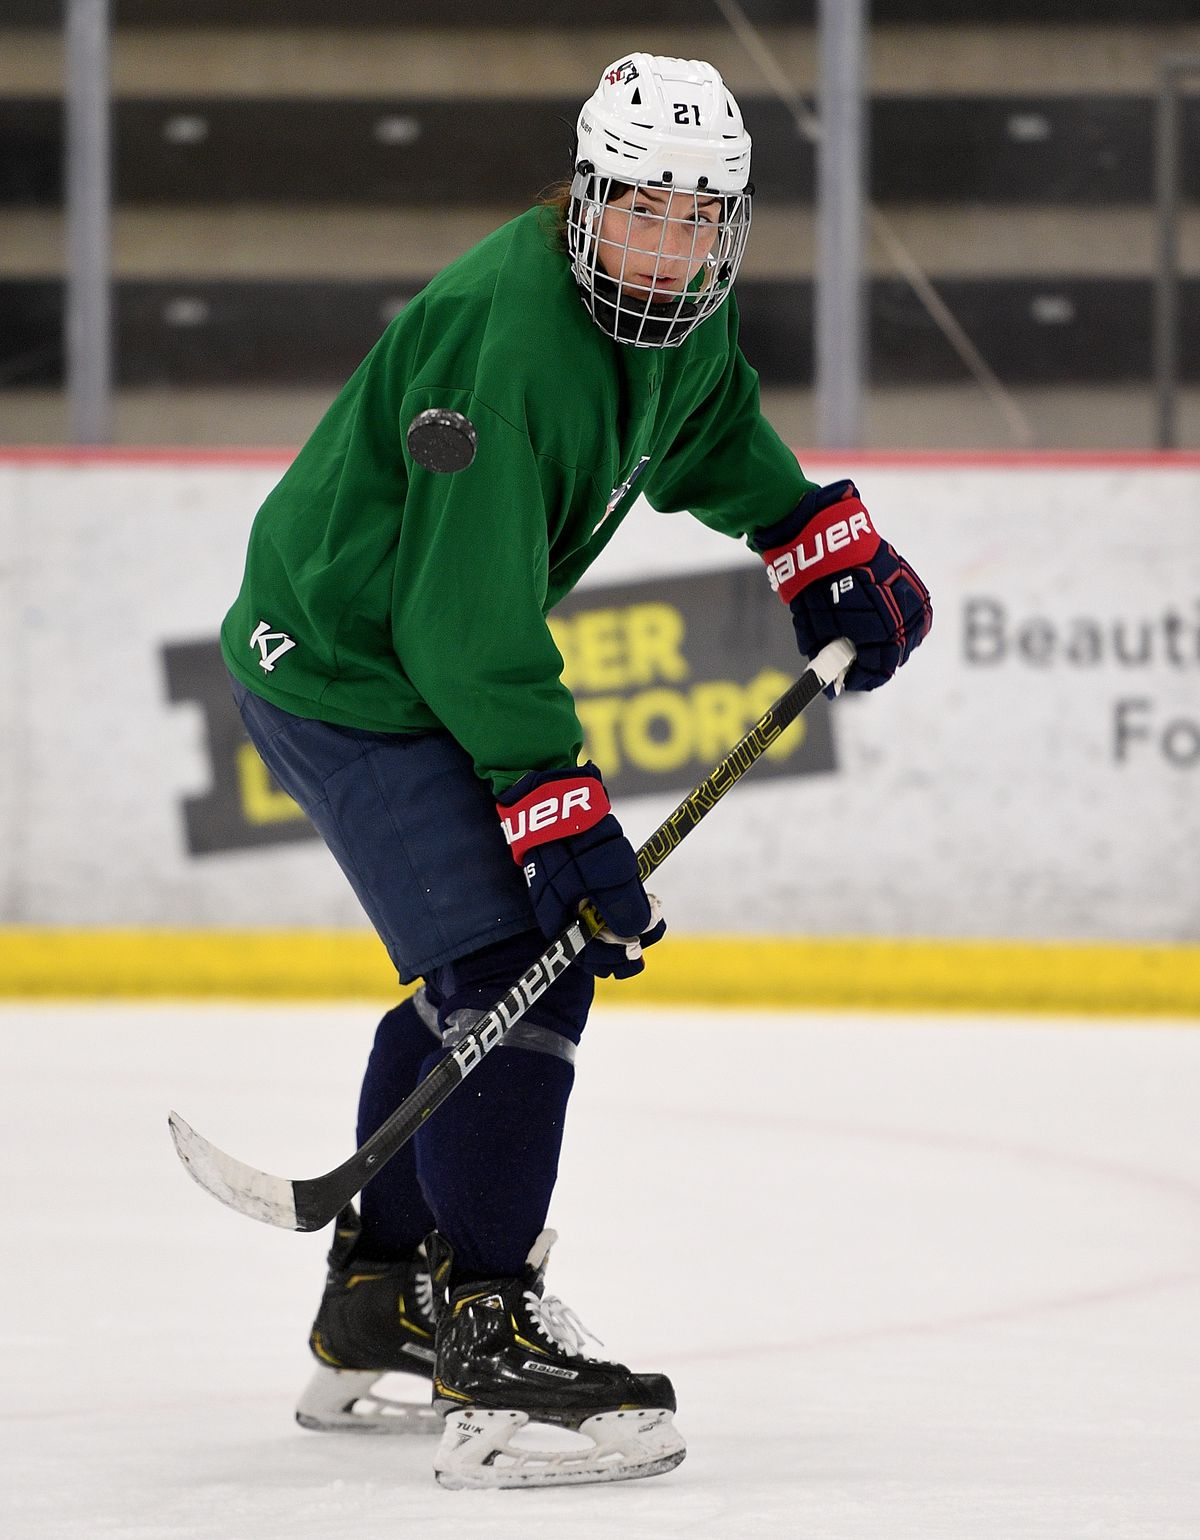 Hilary Knight #21 of the United States flips a puck during the practice.